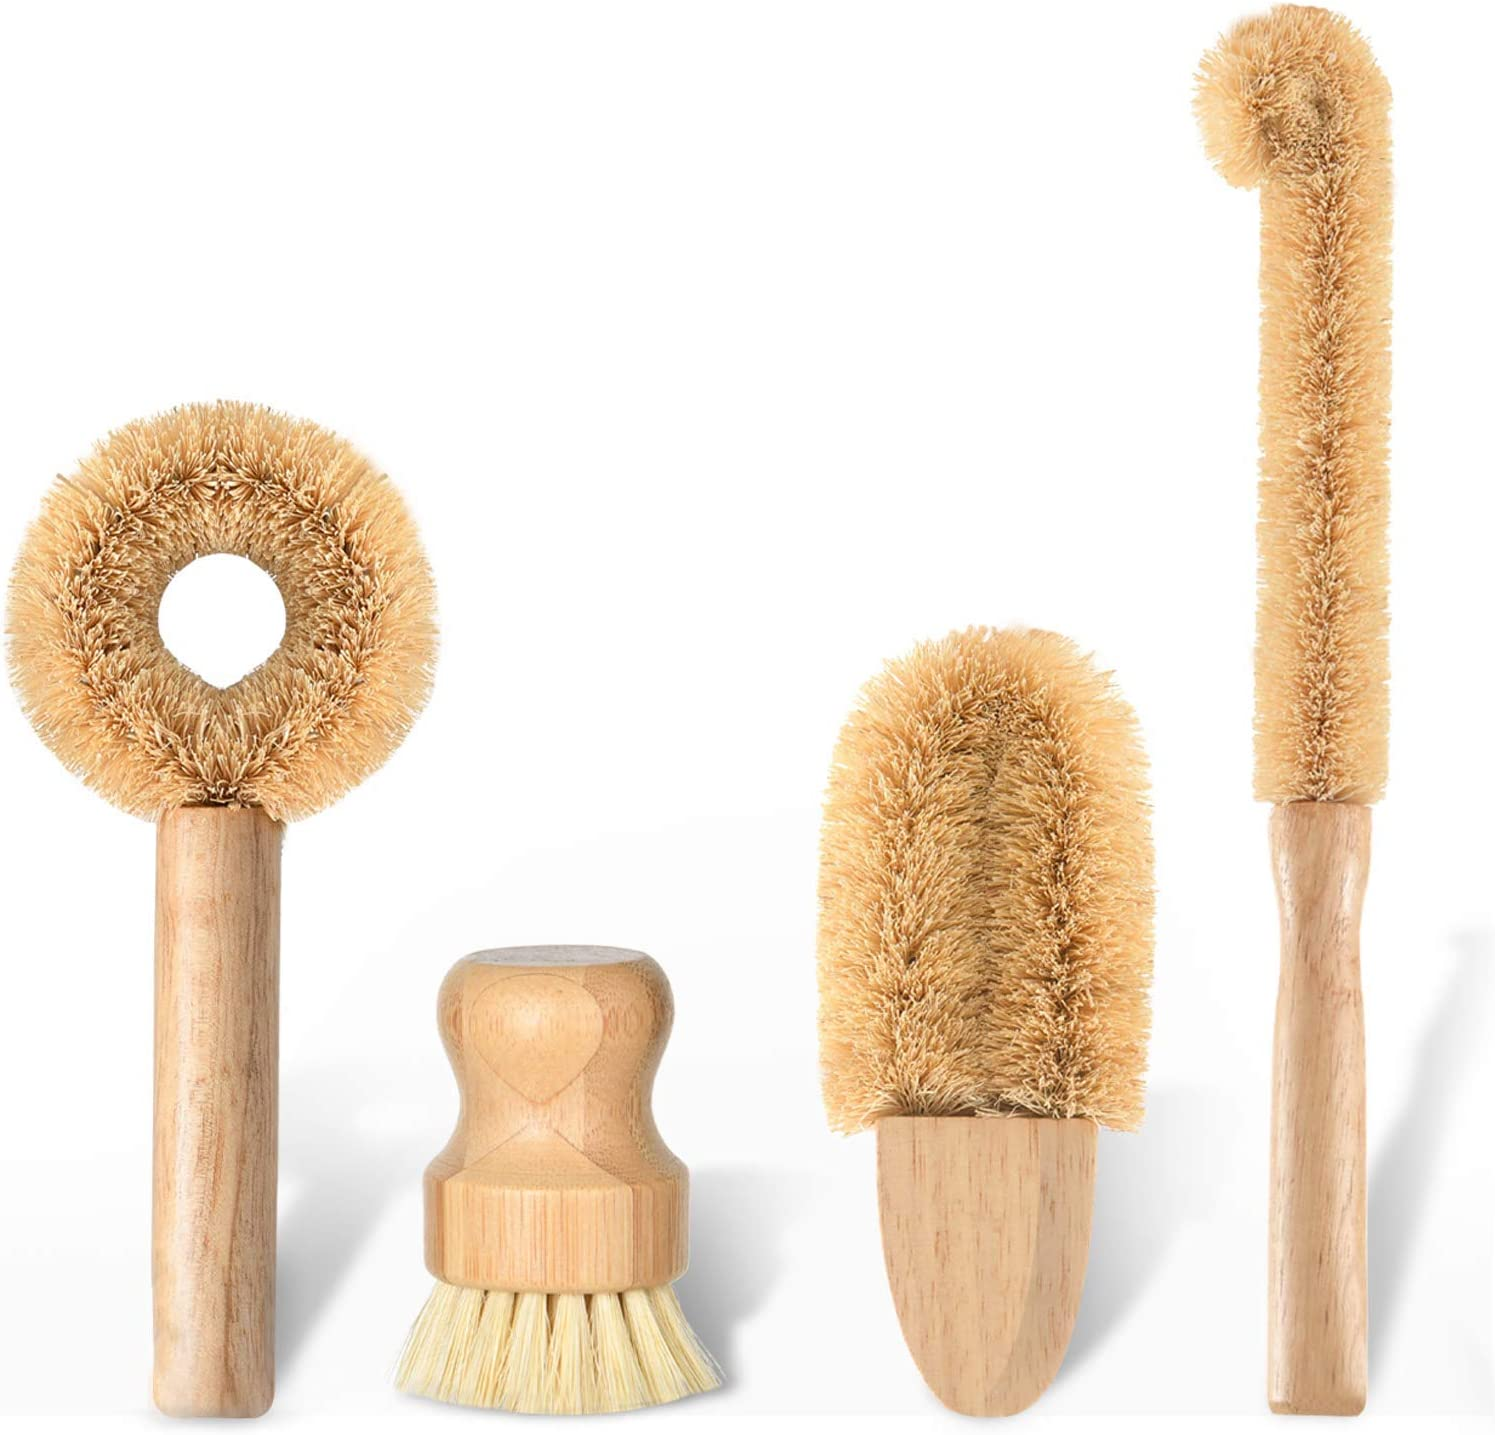 Subekyu Kitchen Scrub Brush Set of 4,All Natural Cleaning Brushes for Dish/Bottle/Vegetable/Pan/Pot, Scrubber with Bamboo Handle and Coconut Fibers Bristles